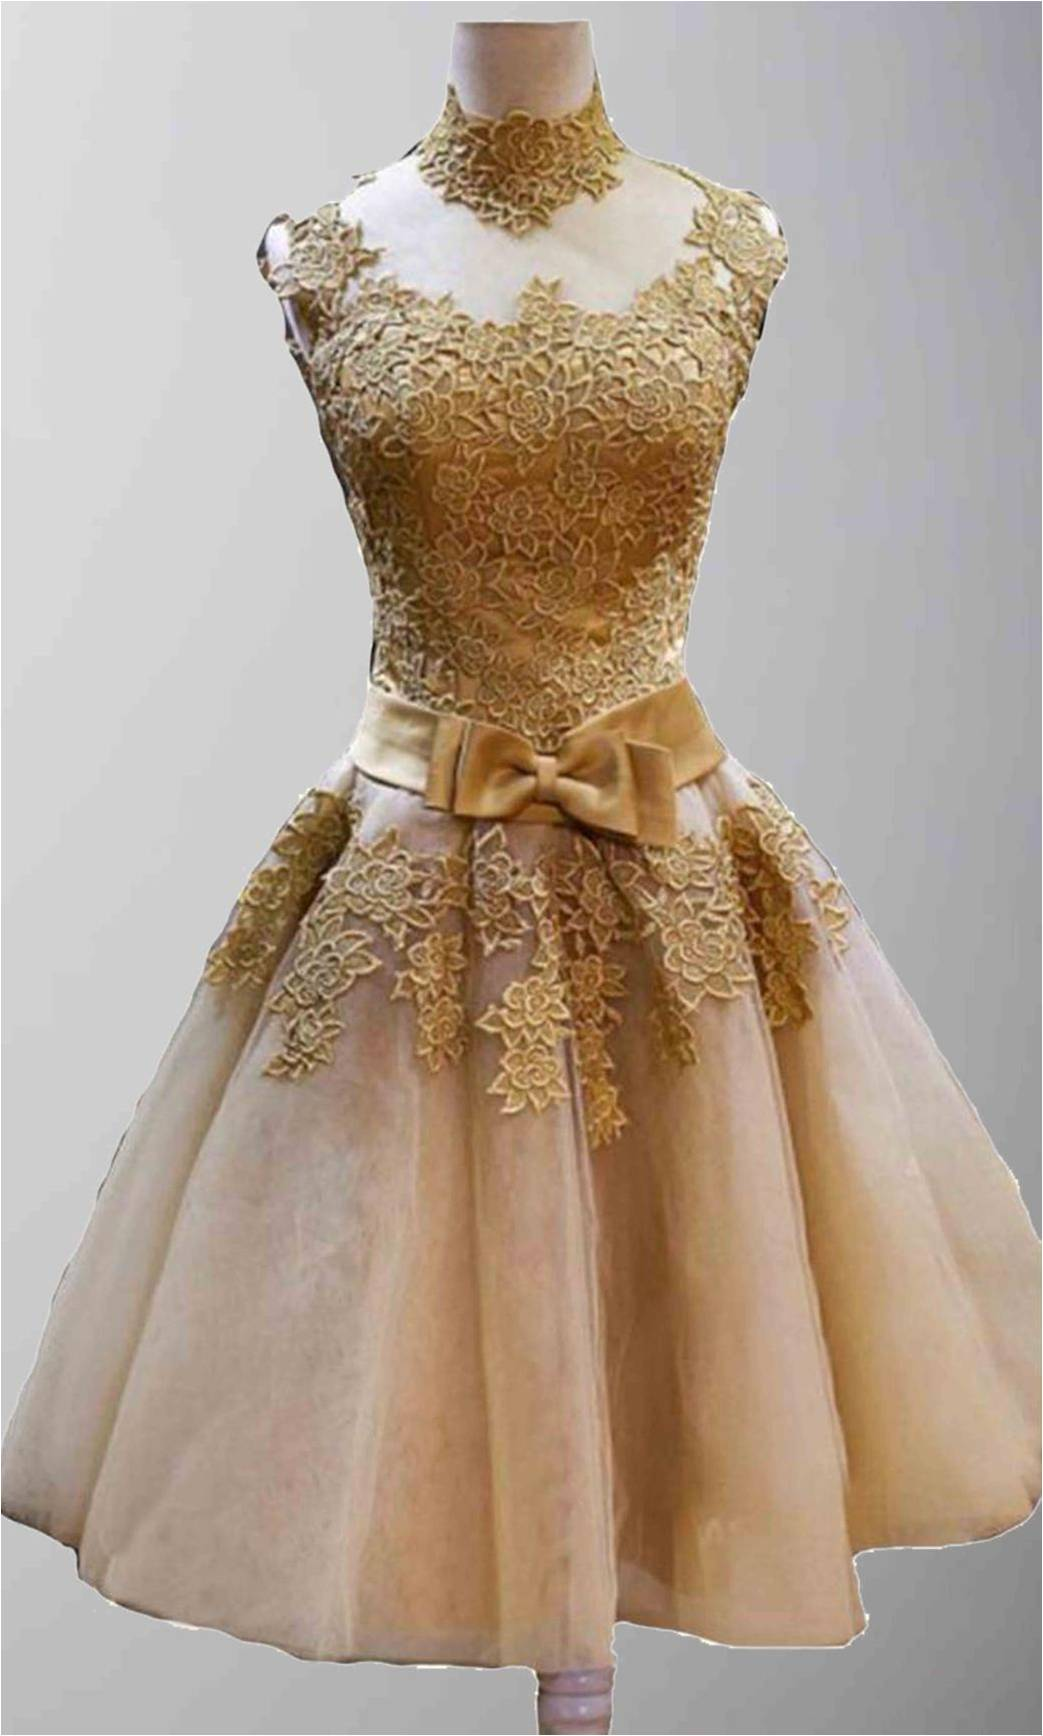 Golden vintage princess high neck short prom dresses ksp320 golden vintage princess high neck short prom dresses ksp320 ksp320 11700 cheap prom dresses uk bridesmaid dresses 2014 prom evening dresses ombrellifo Image collections